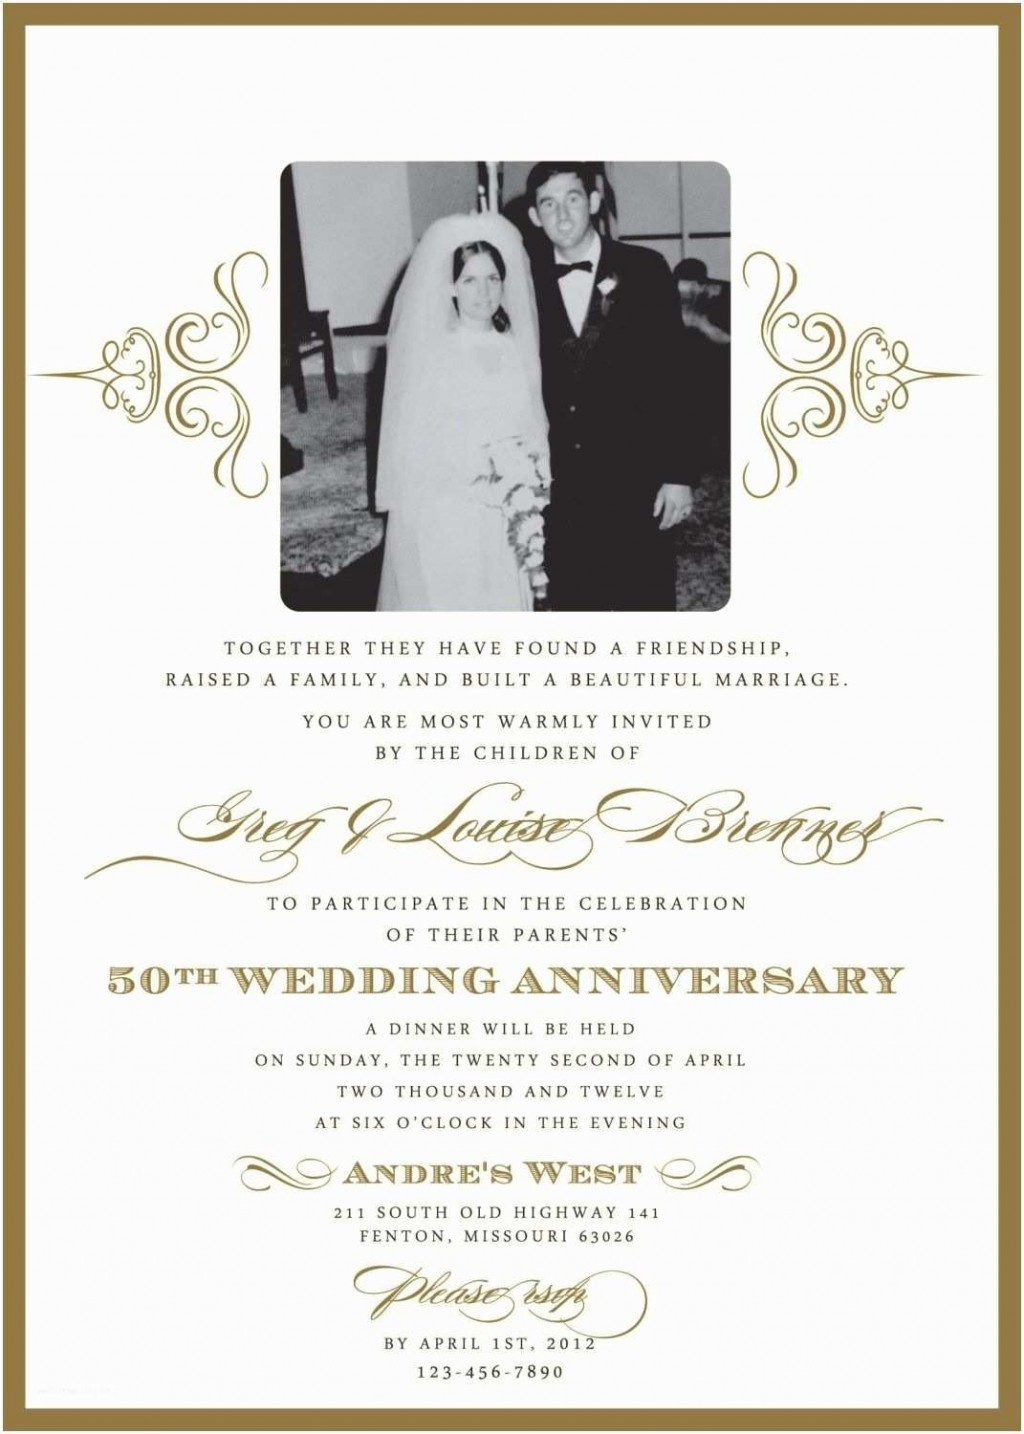 004 Frightening 50th Wedding Anniversary Invitation Template Design  Templates Golden Uk Free DownloadLarge